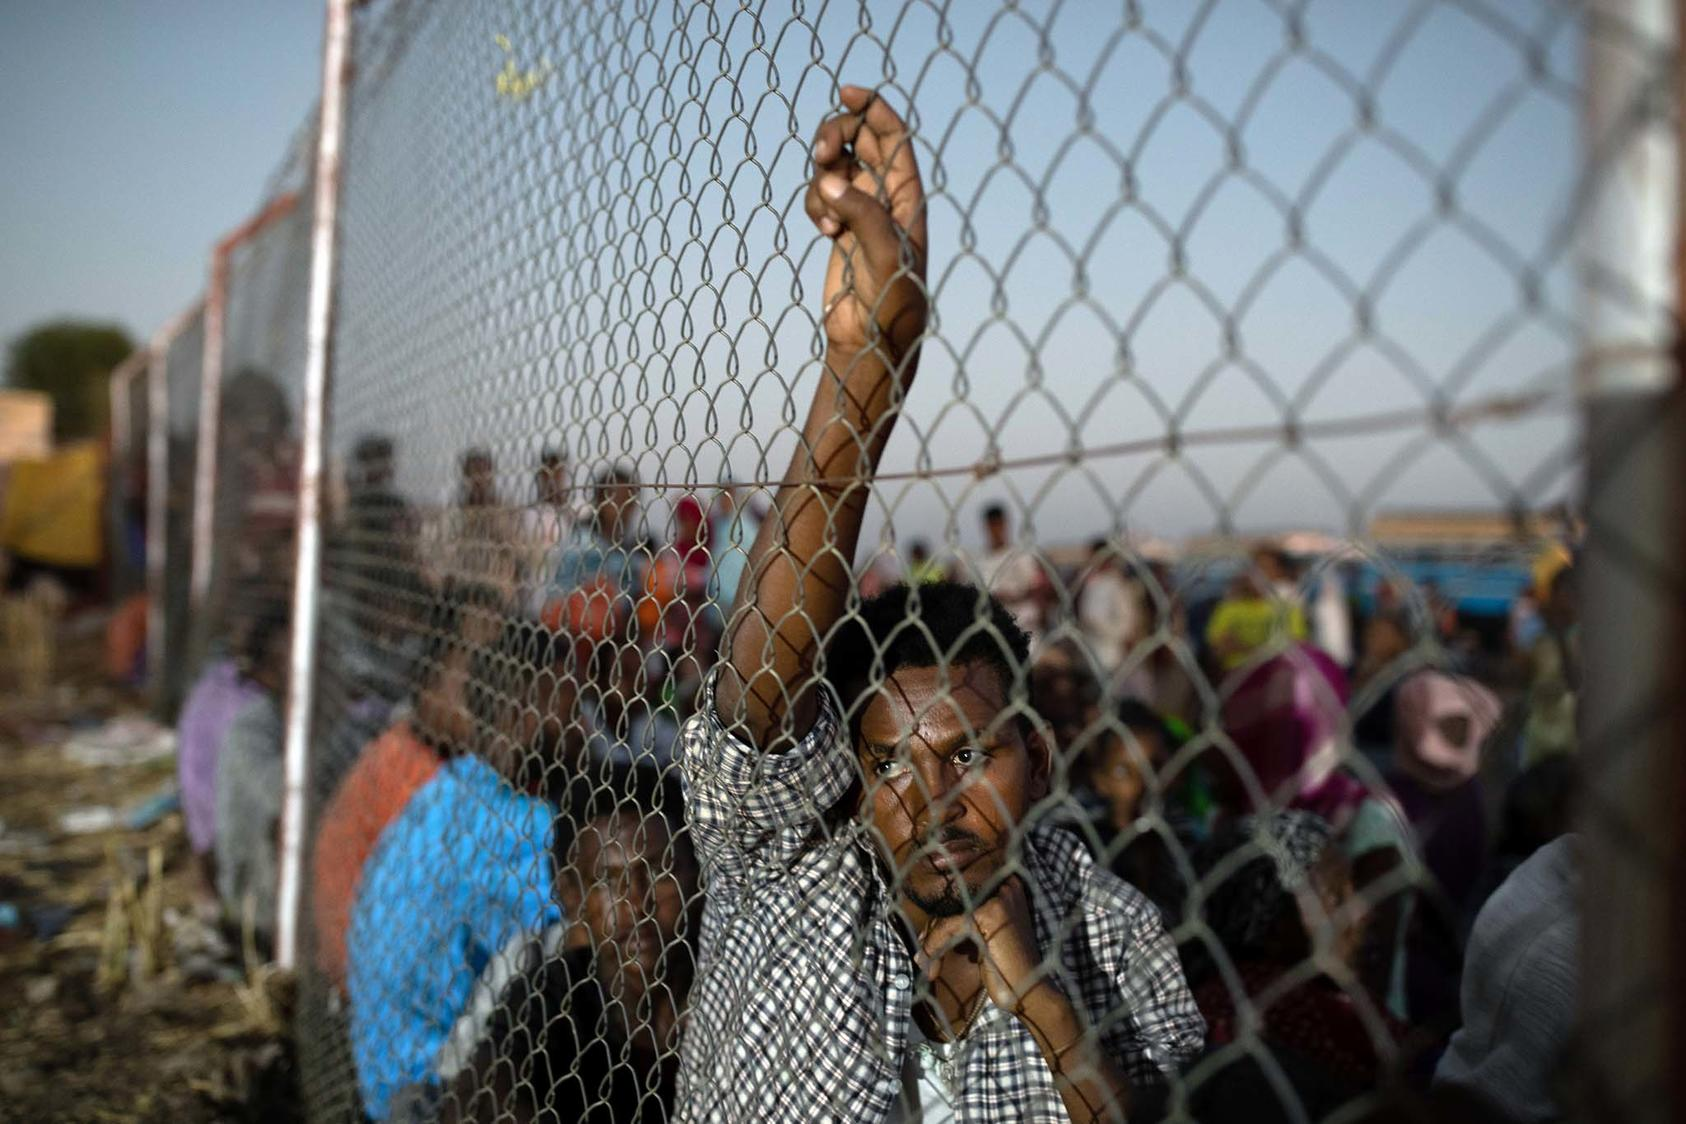 Ethiopian refugees wait for relief supplies at a United Nations compound in Hamdayet, Sudan, on Saturday, Dec. 5, 2020. (Tyler Hicks/The New York Times)